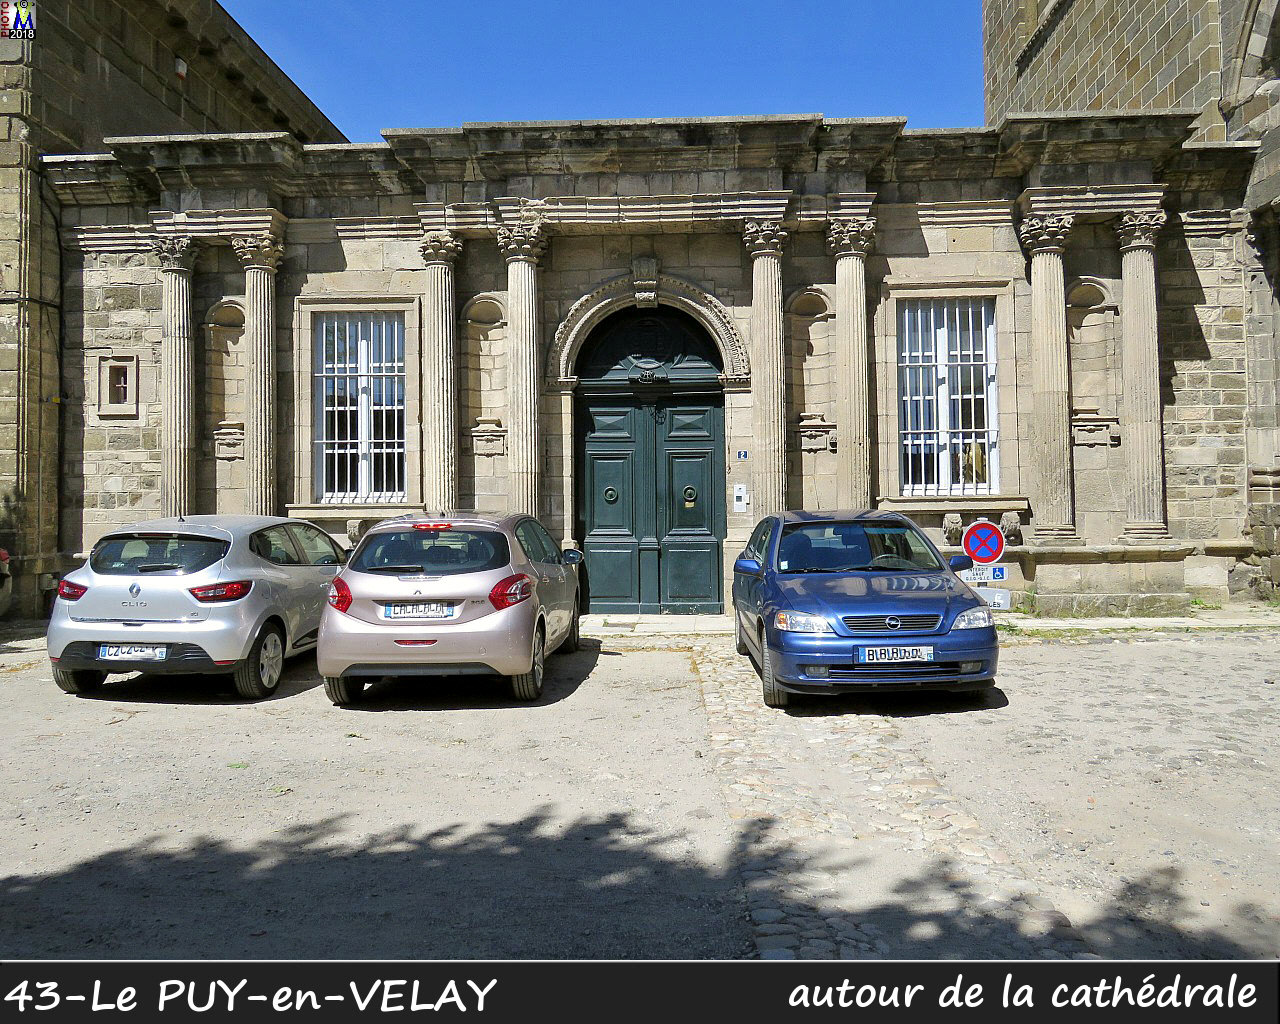 43PUY-EN-VELAY_cathedrale_402.jpg